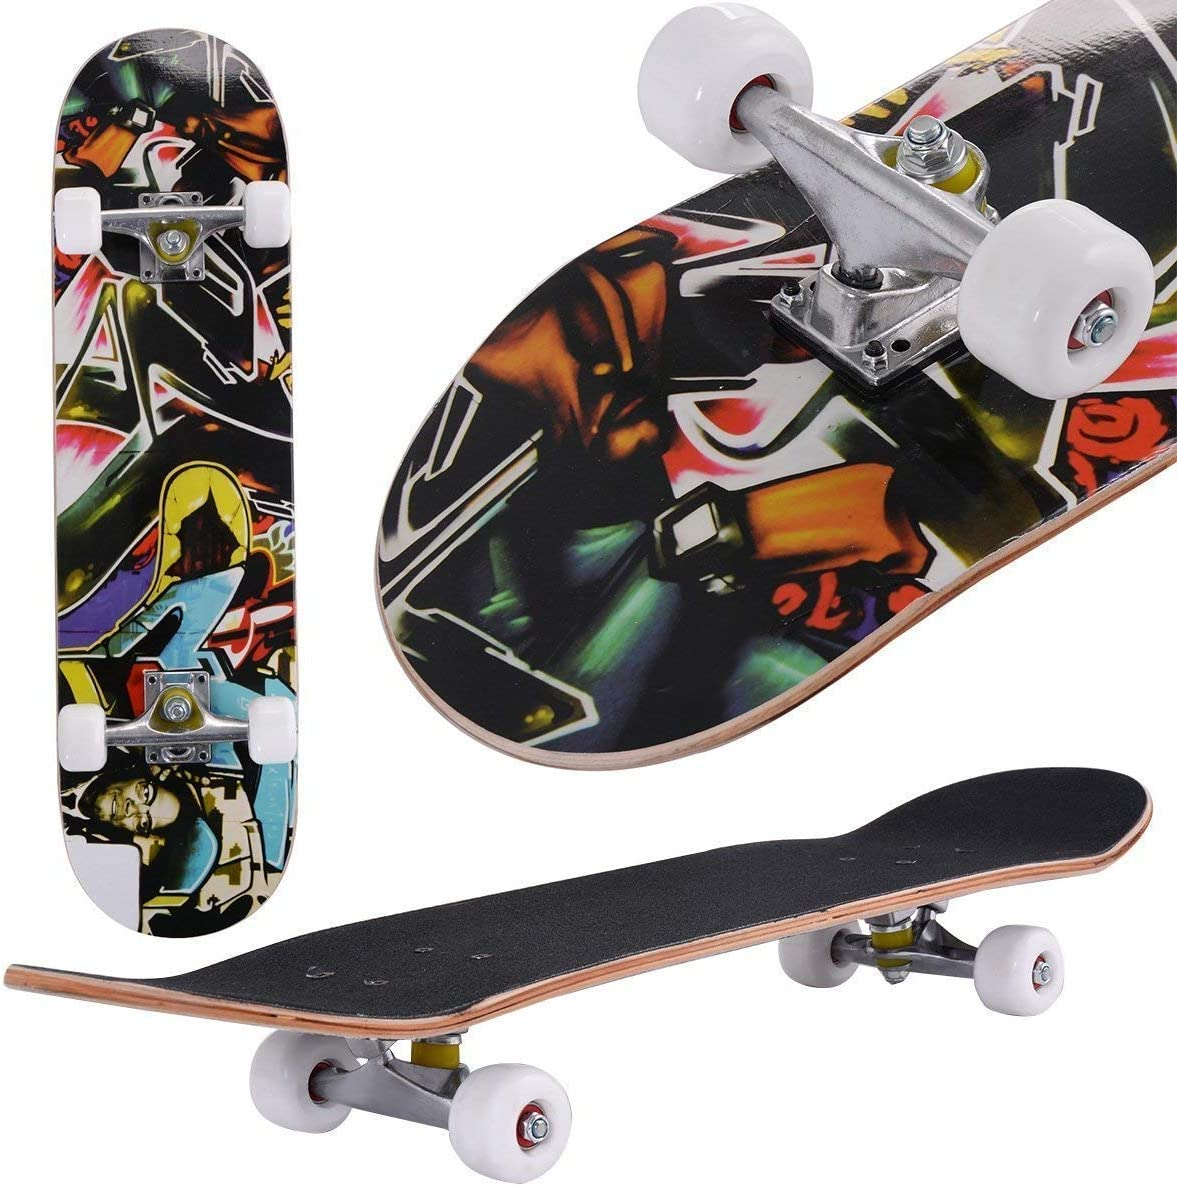 Aceshin Skateboard, 31 x 8 Complete PRO Skateboard, 9 Layer Canadian Maple Wood Double Kick Tricks Skate Board Concave Design for Beginner,Gift for Kids Boys Girls Youths